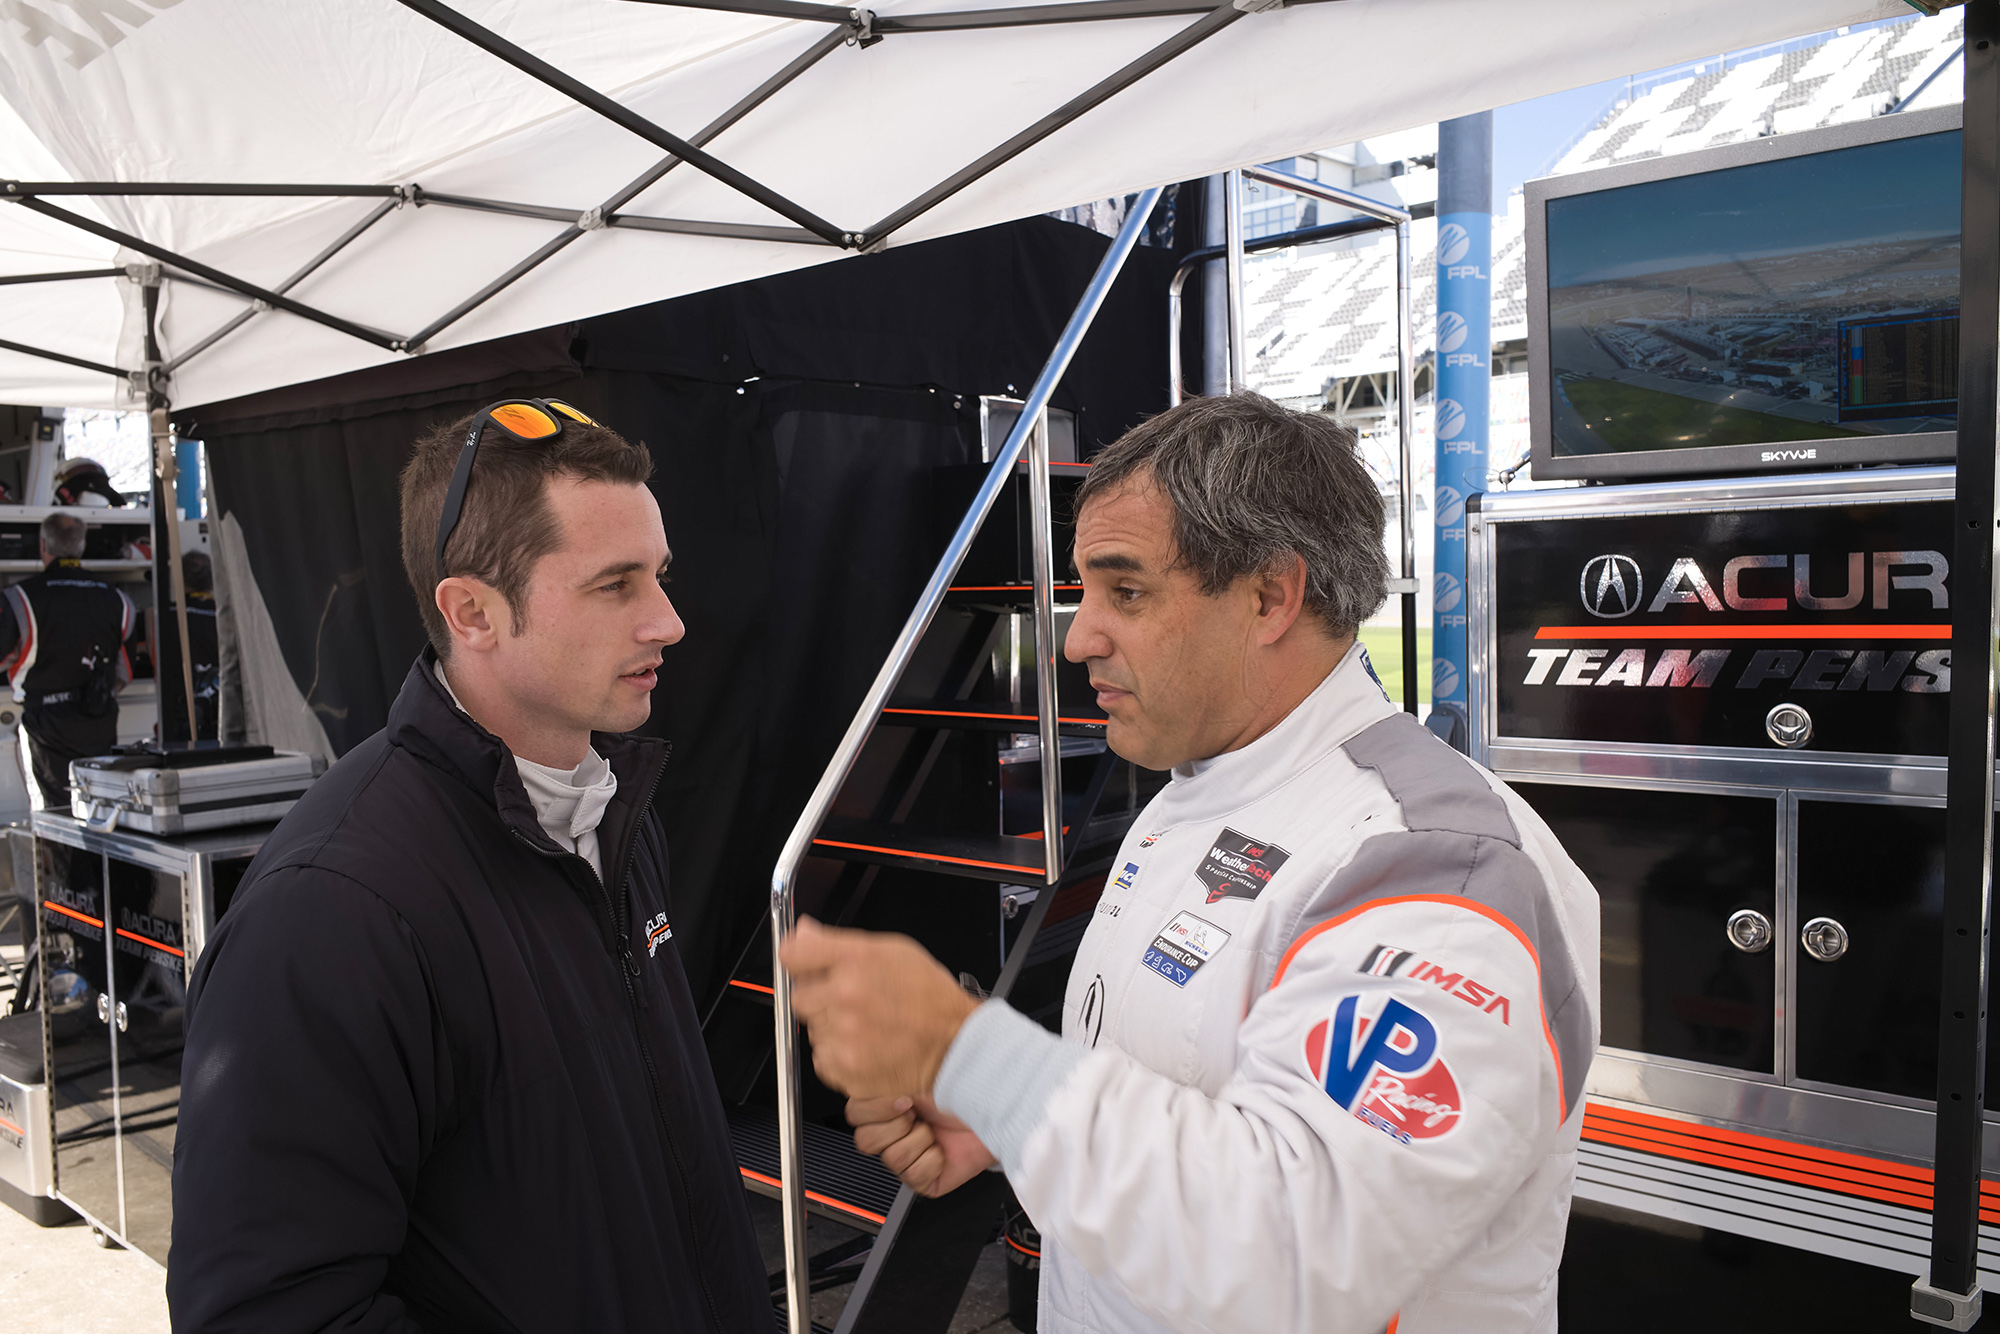 Montoya to beat Alonso to the triple crown in new Le Mans/Daytona car?